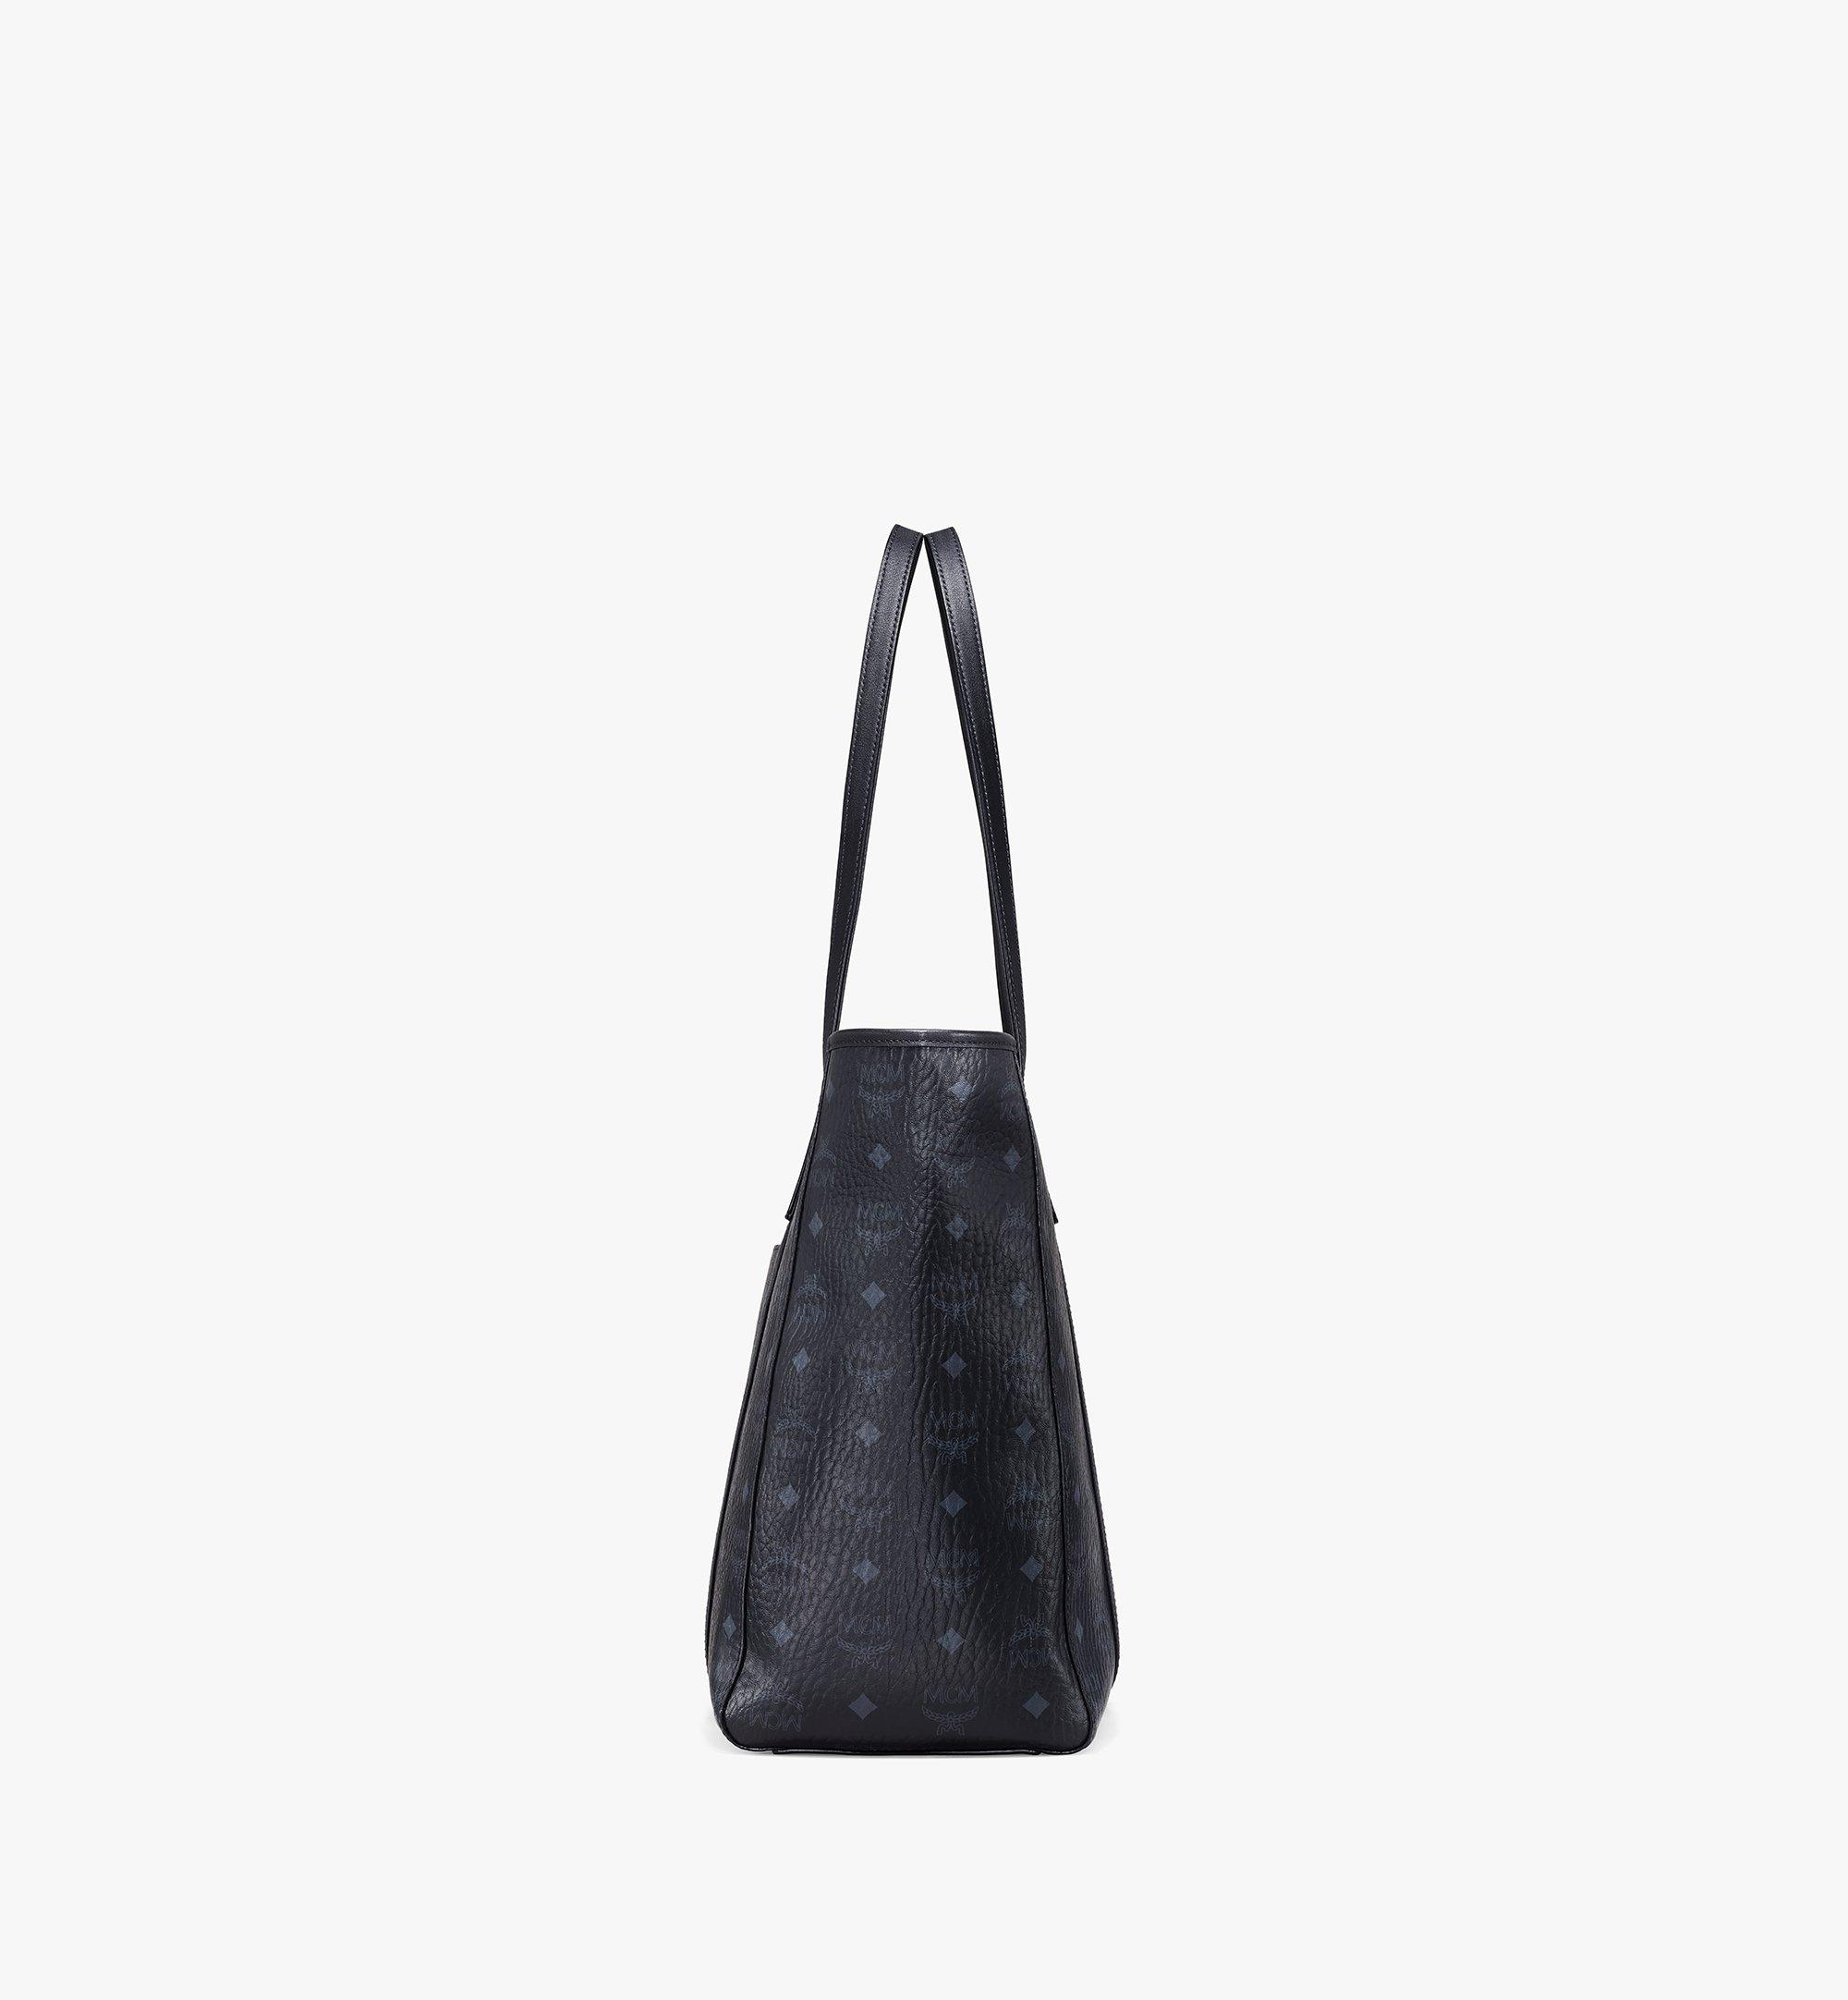 MCM Toni Shopper in Visetos Black MWPAATN03BK001 Alternate View 2